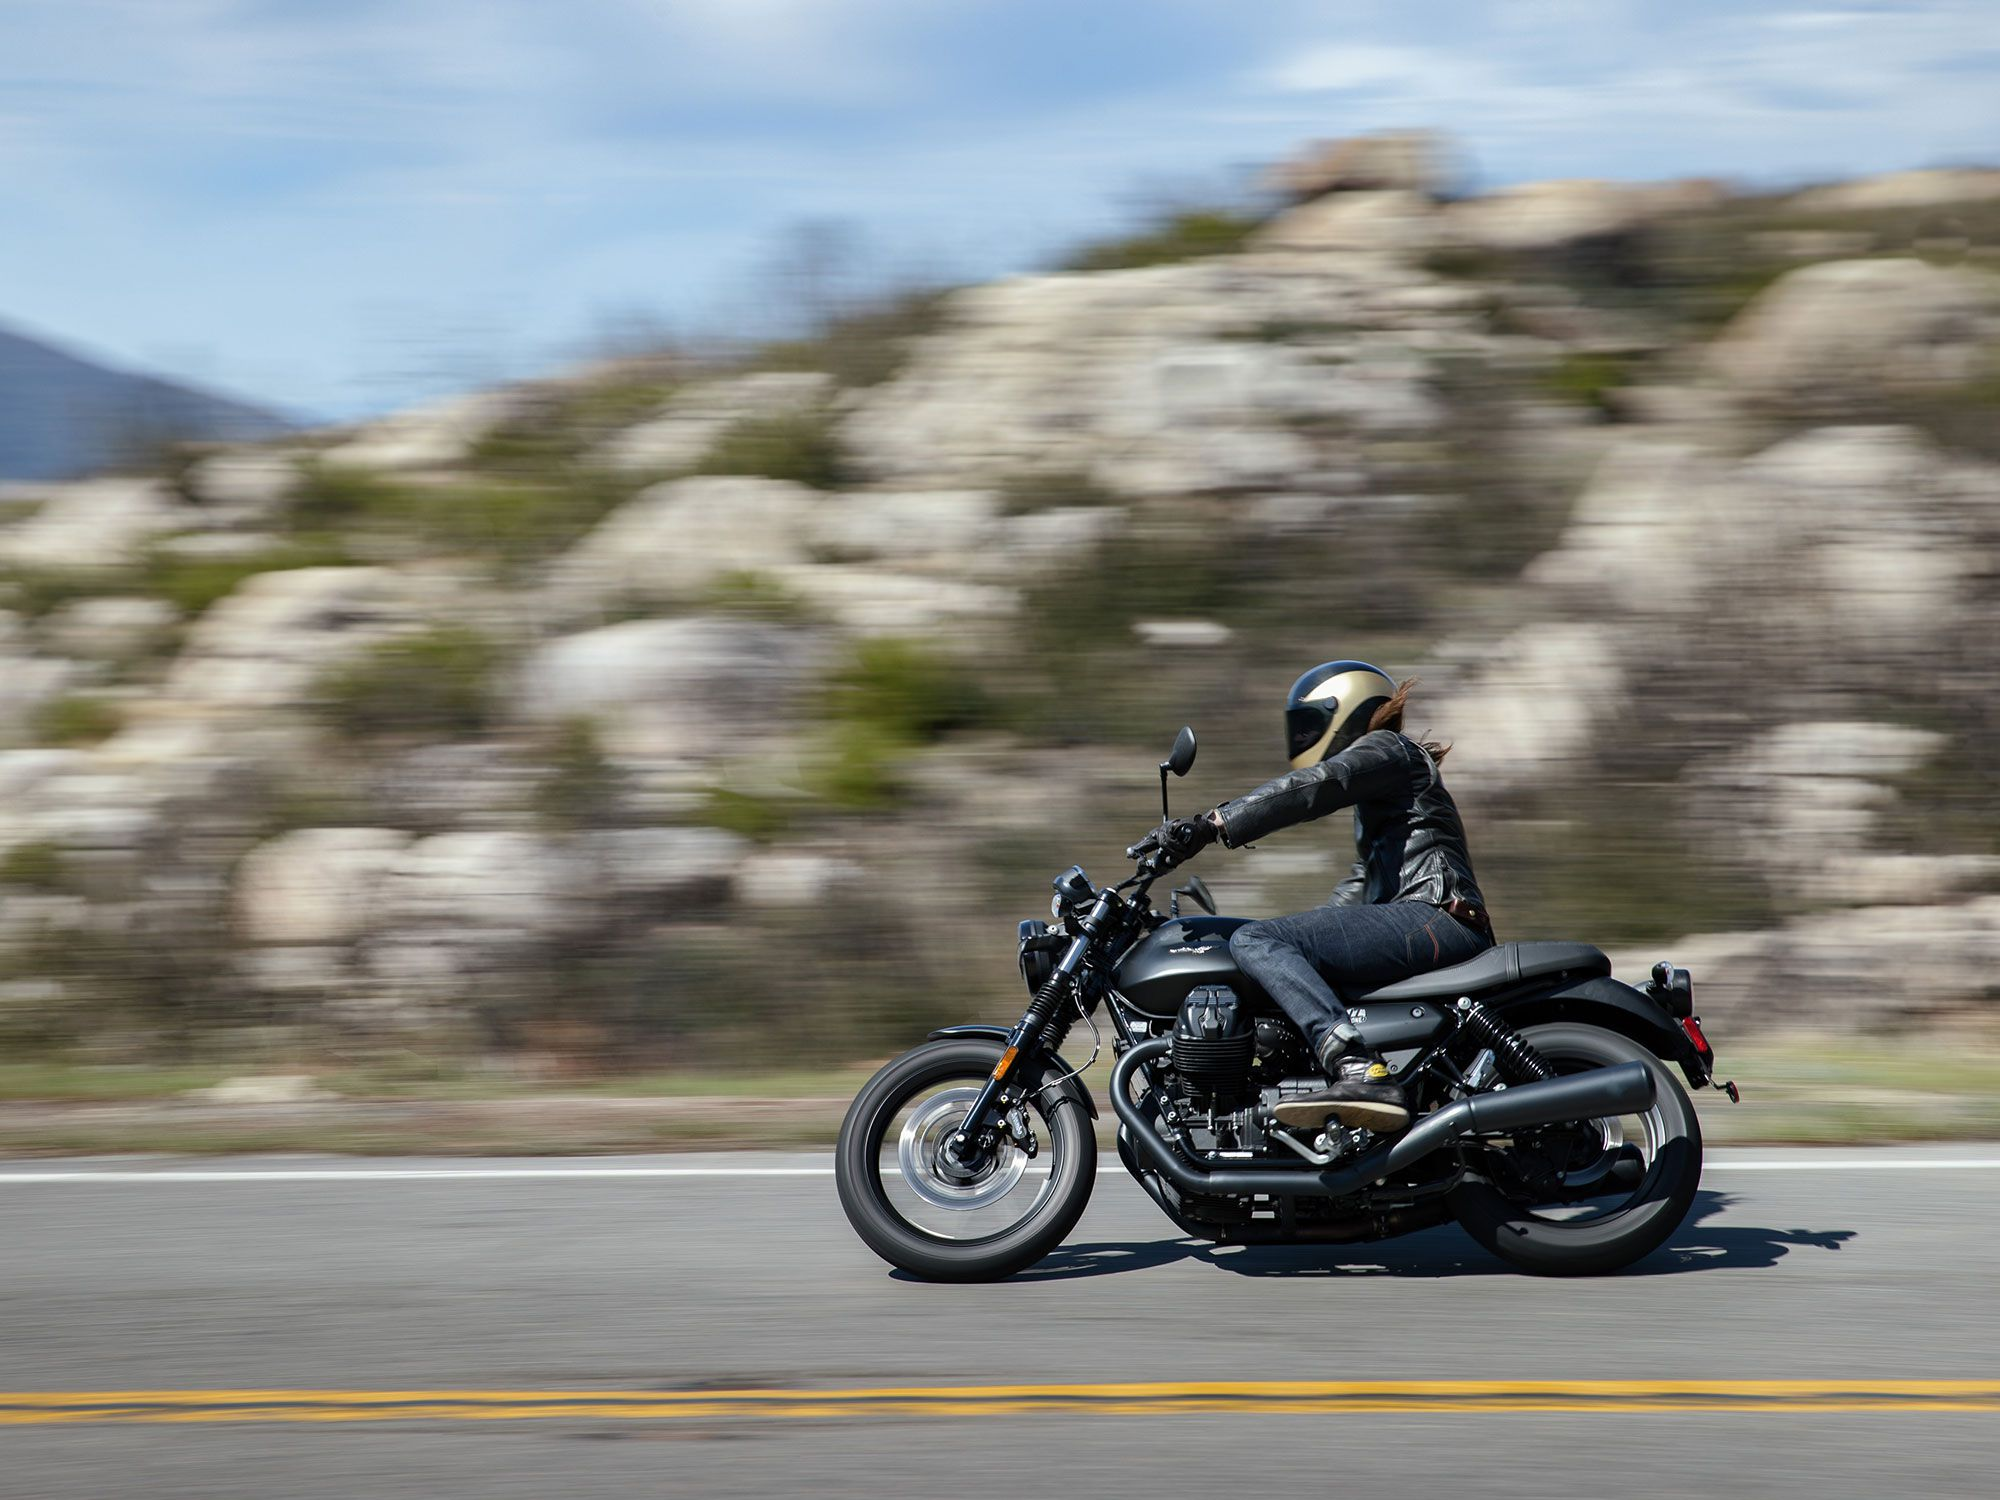 Our first ride test took place in the California desert outside of Palm Springs—a great destination for both wide open and twisty roads.